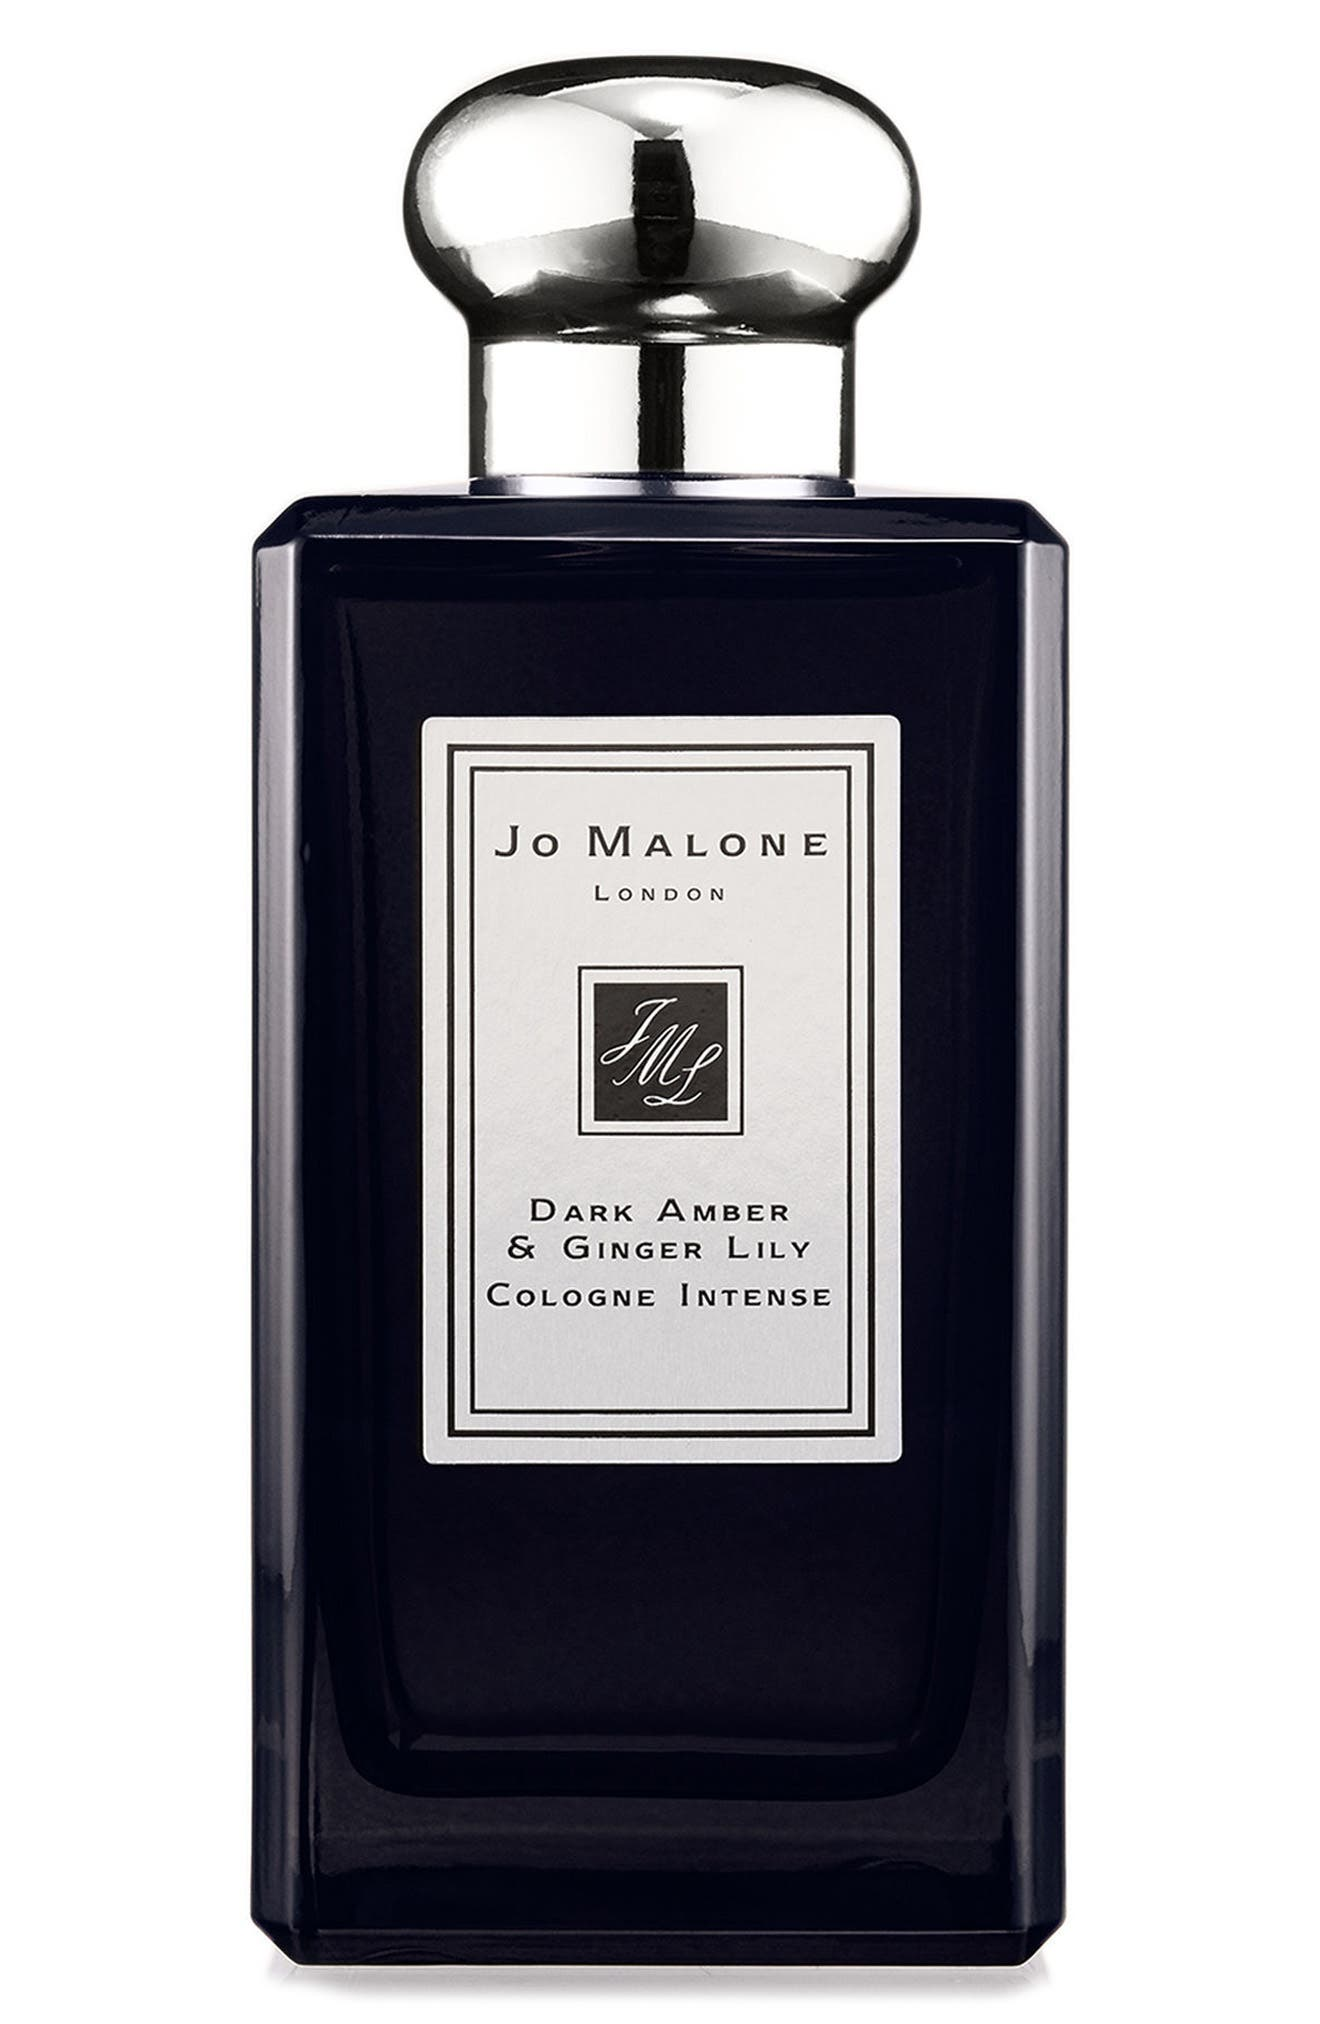 Alternate Image 1 Selected - Jo Malone London™ 'Dark Amber & Ginger Lily' Cologne Intense